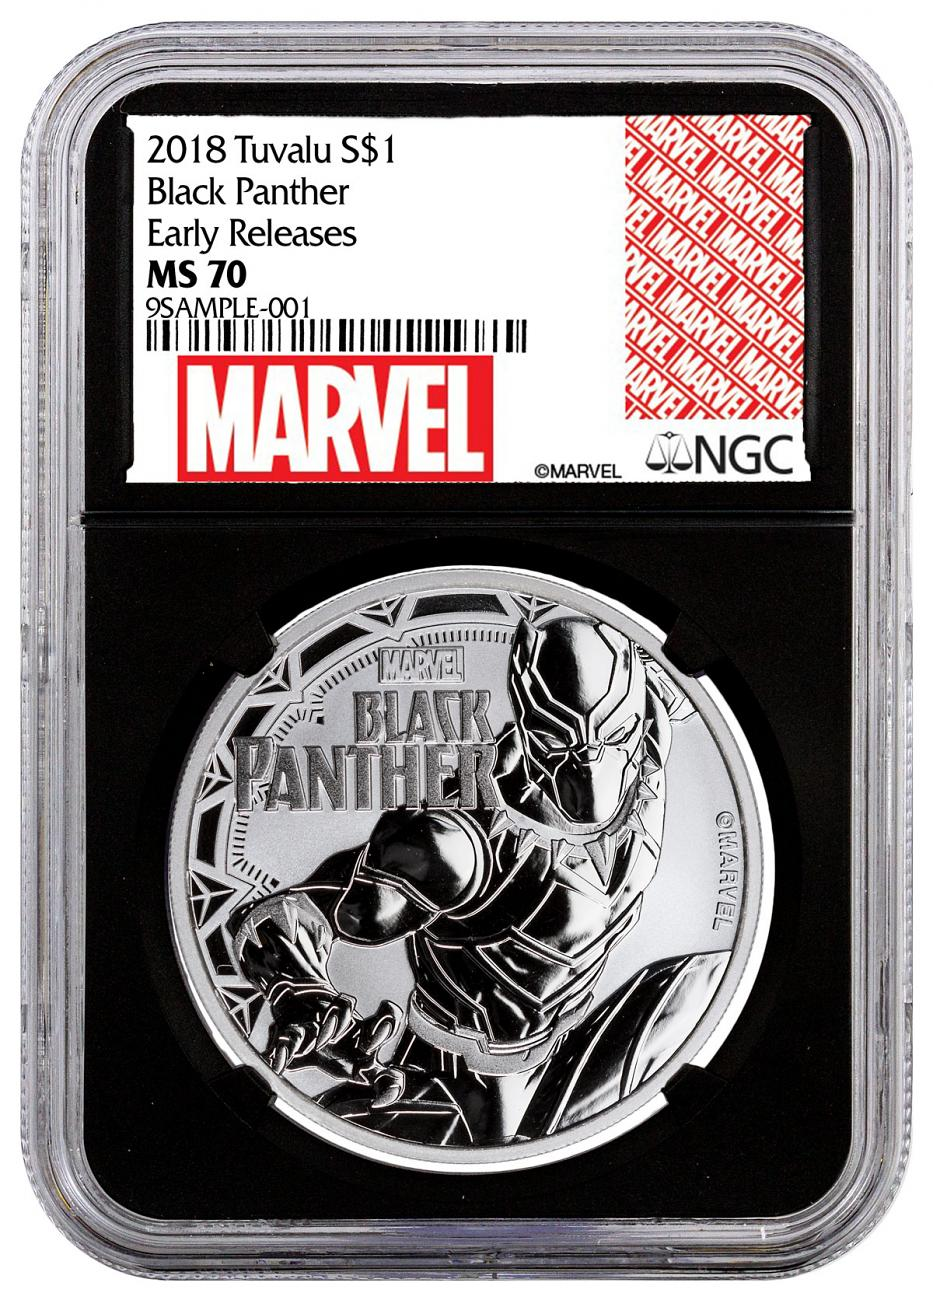 2018 Tuvalu Black Panther 1 oz Silver Marvel Series $1 Coin NGC MS70 ER Black Core Holder Exclusive Marvel Label